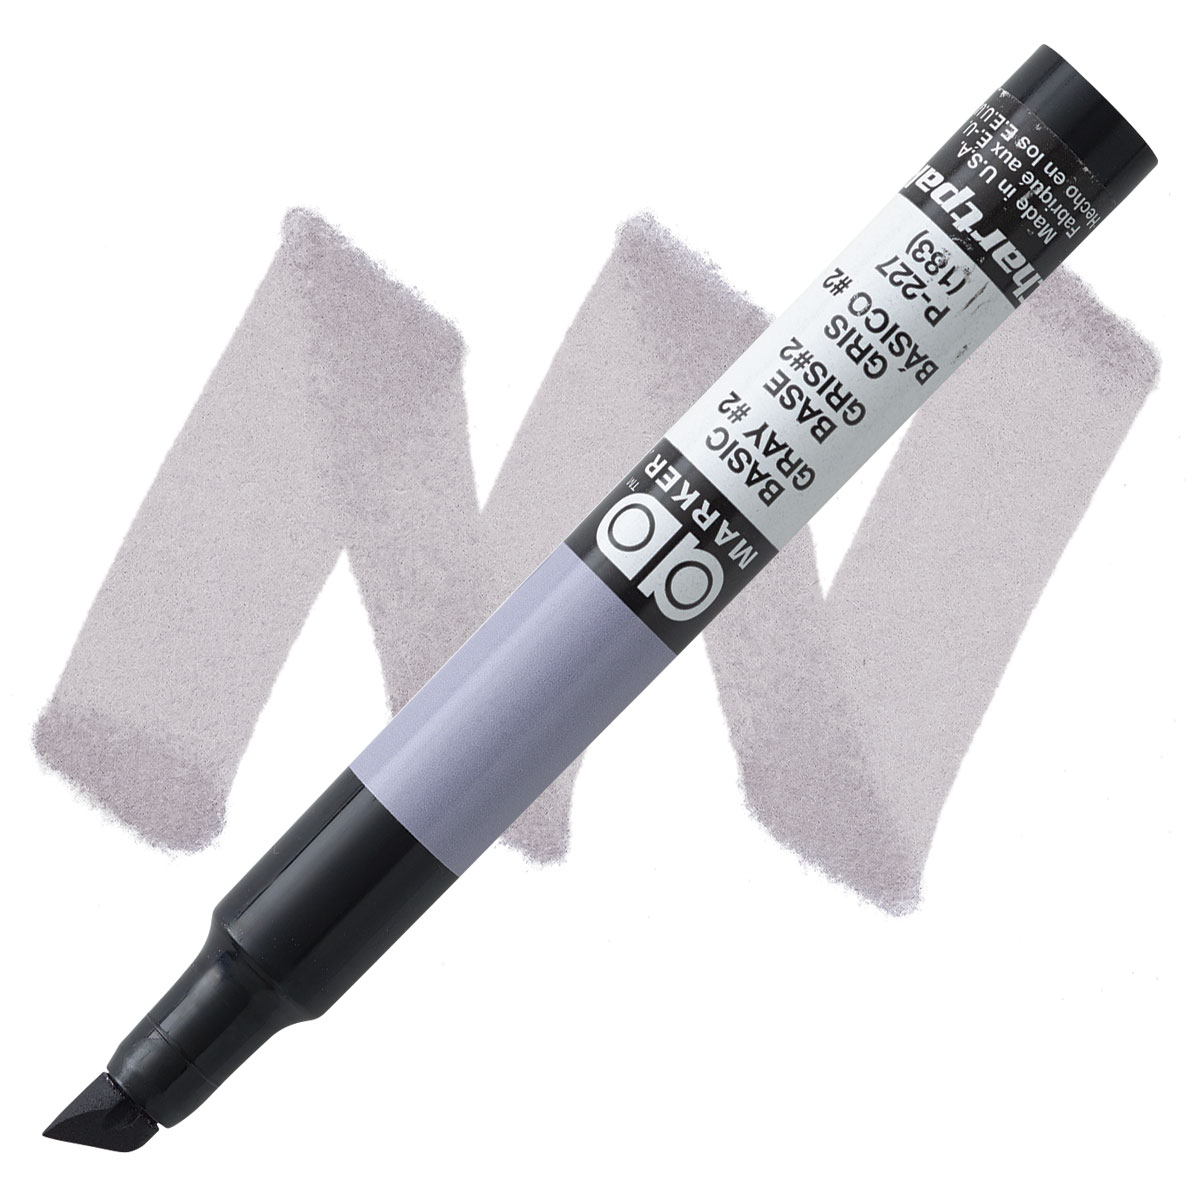 P227 Basic Grey 2 Chartpak Markers 6-pack